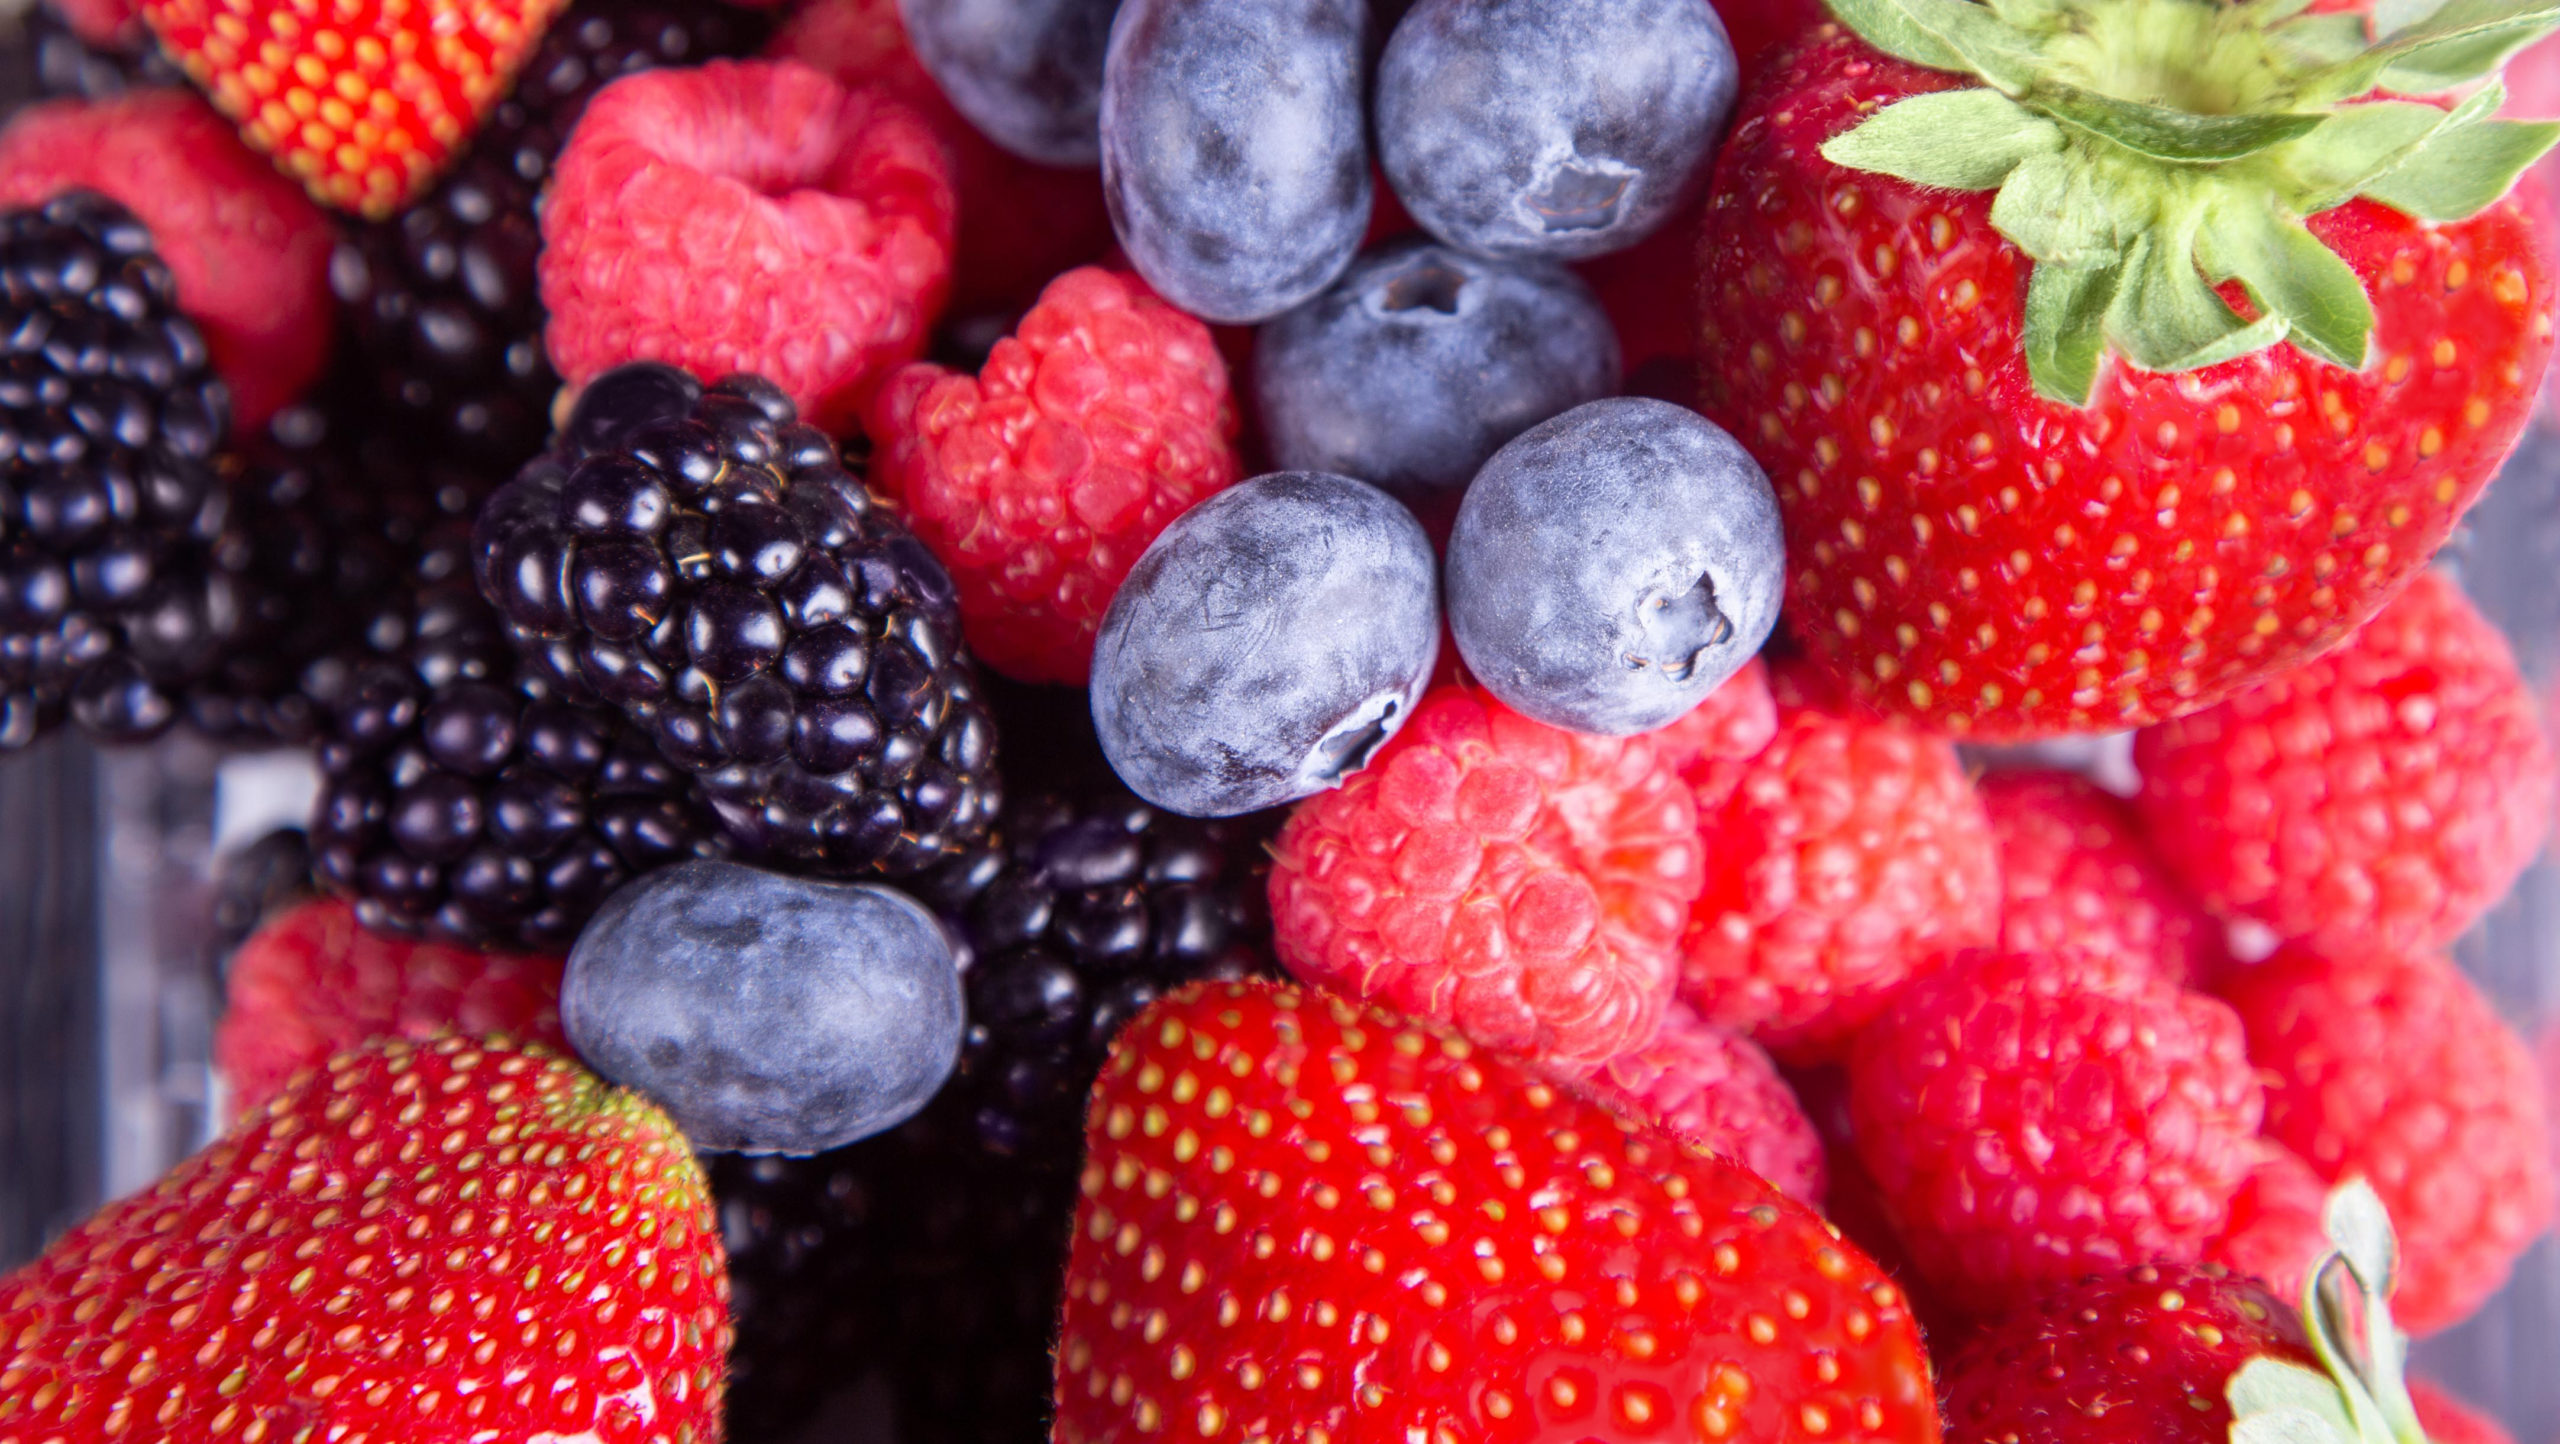 Fresh Results combination berries: strawberries, raspberries, blueberries, and blackberries